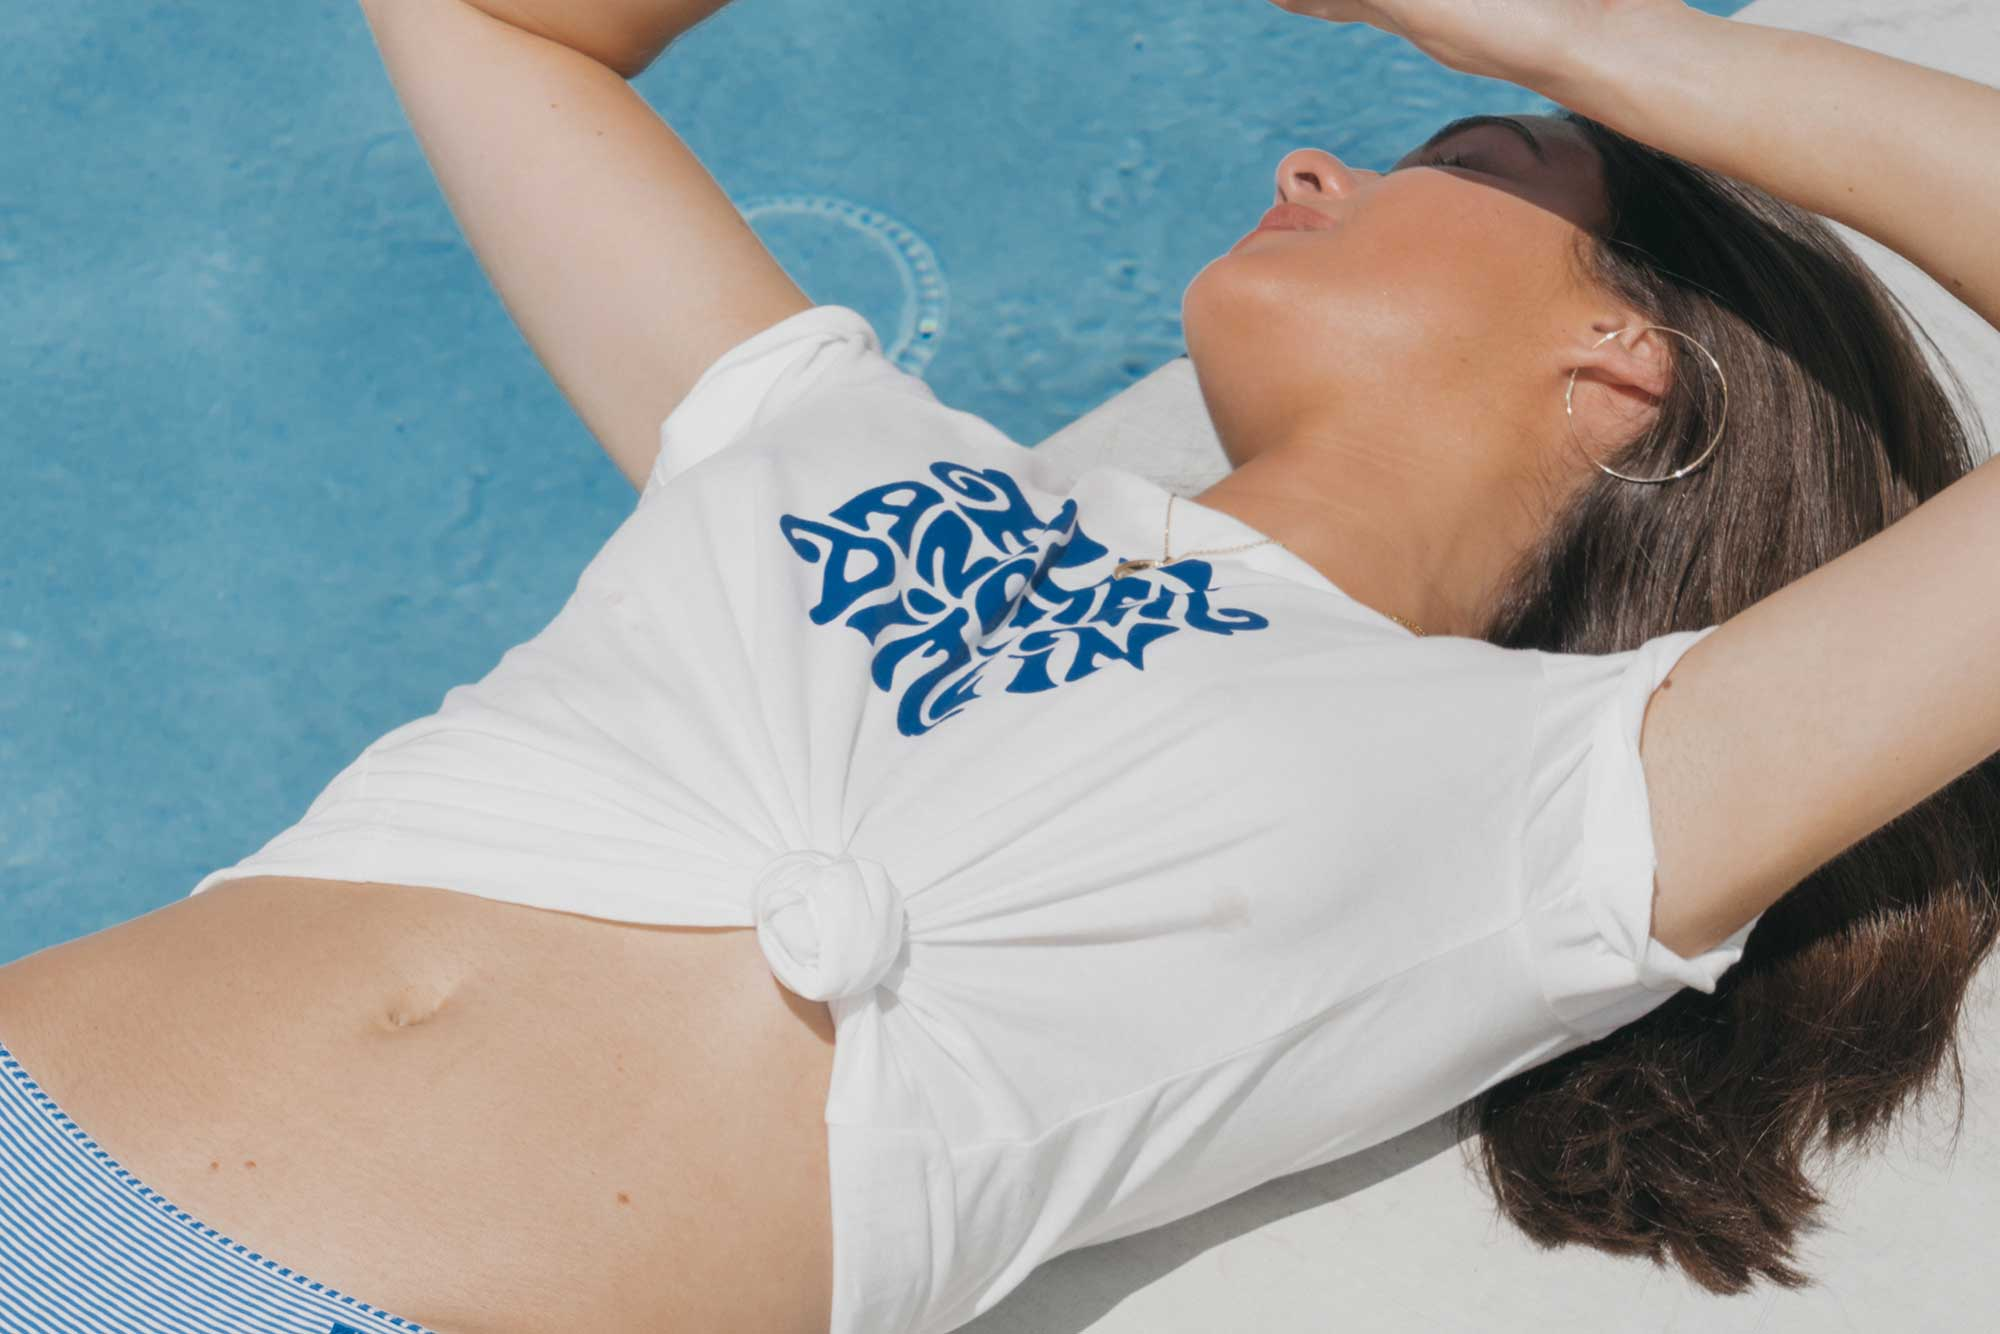 graphic tshirt with swimsuit pool outfit1.jpg